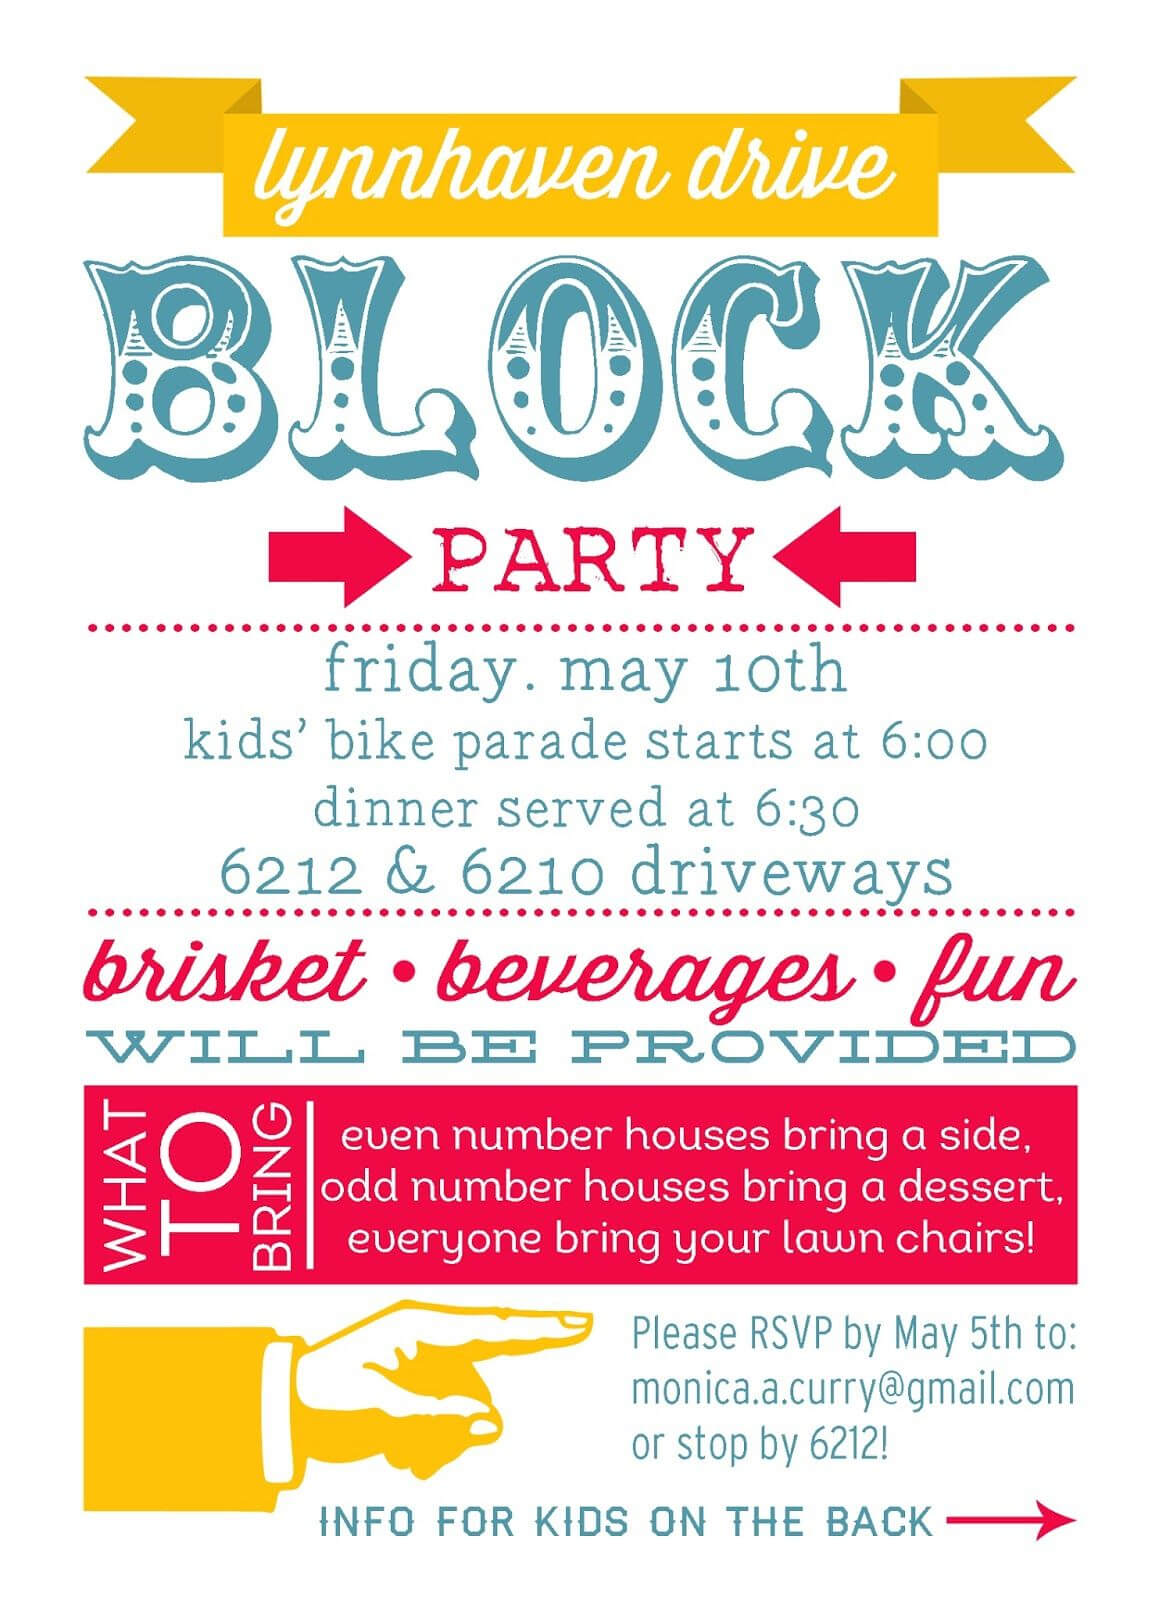 001 Block Party Invite Template Archaicawful Ideas Free Within Block Party Flyer Template